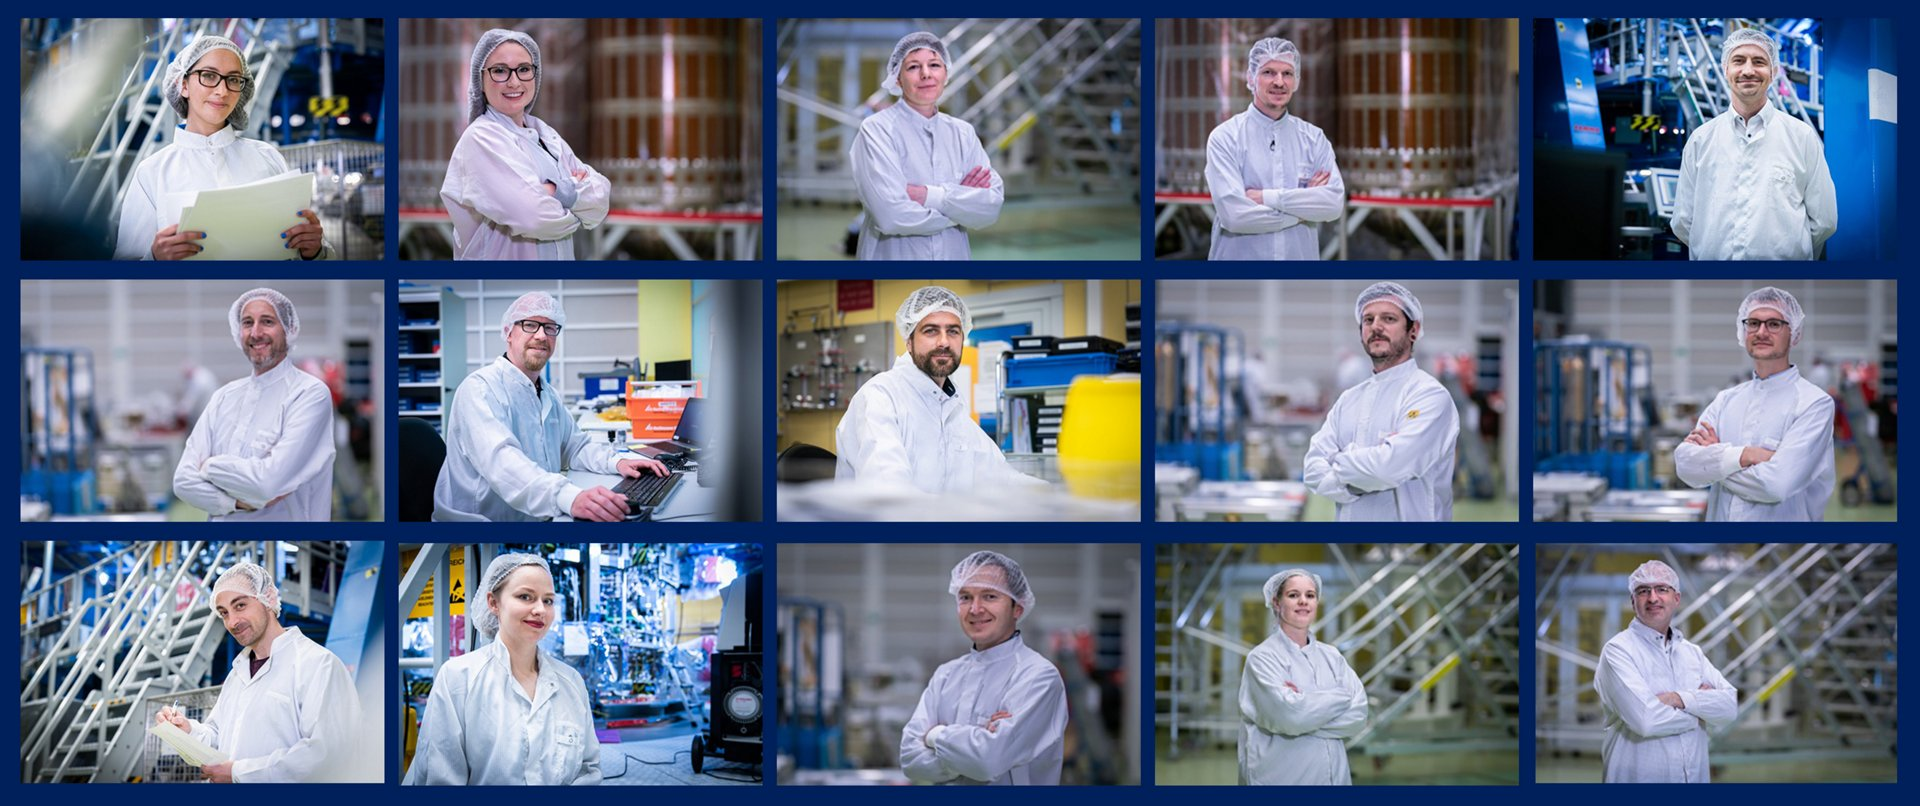 Airbus employees highlight their role in expanding humankind's exploration of space